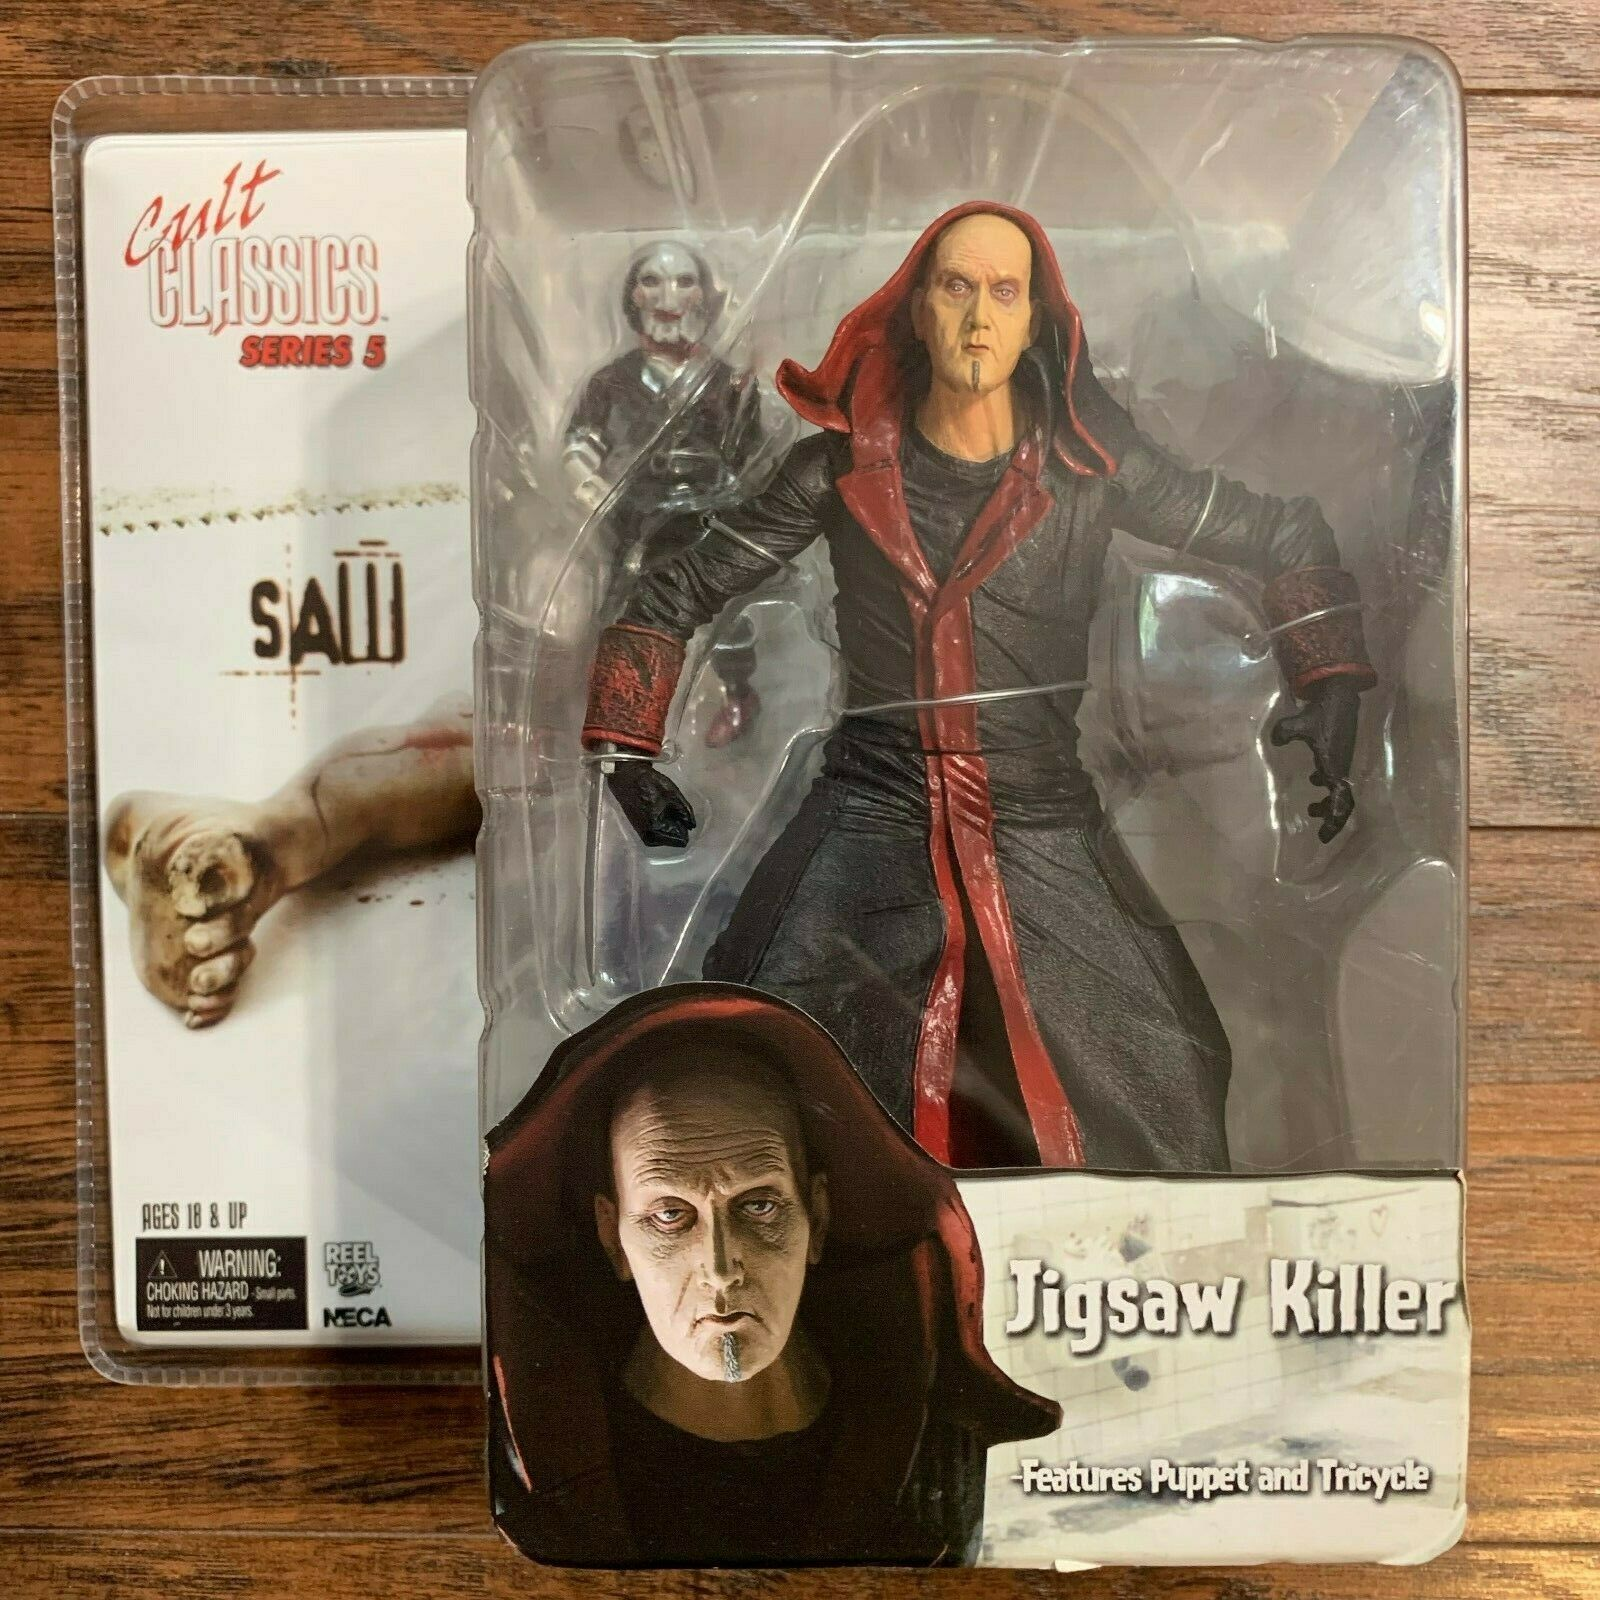 Cult classeis Series Series Series 5 Saw -Jigsaw Killer With Puppet e Tricycle NECA Reel giocattoli cdfcca